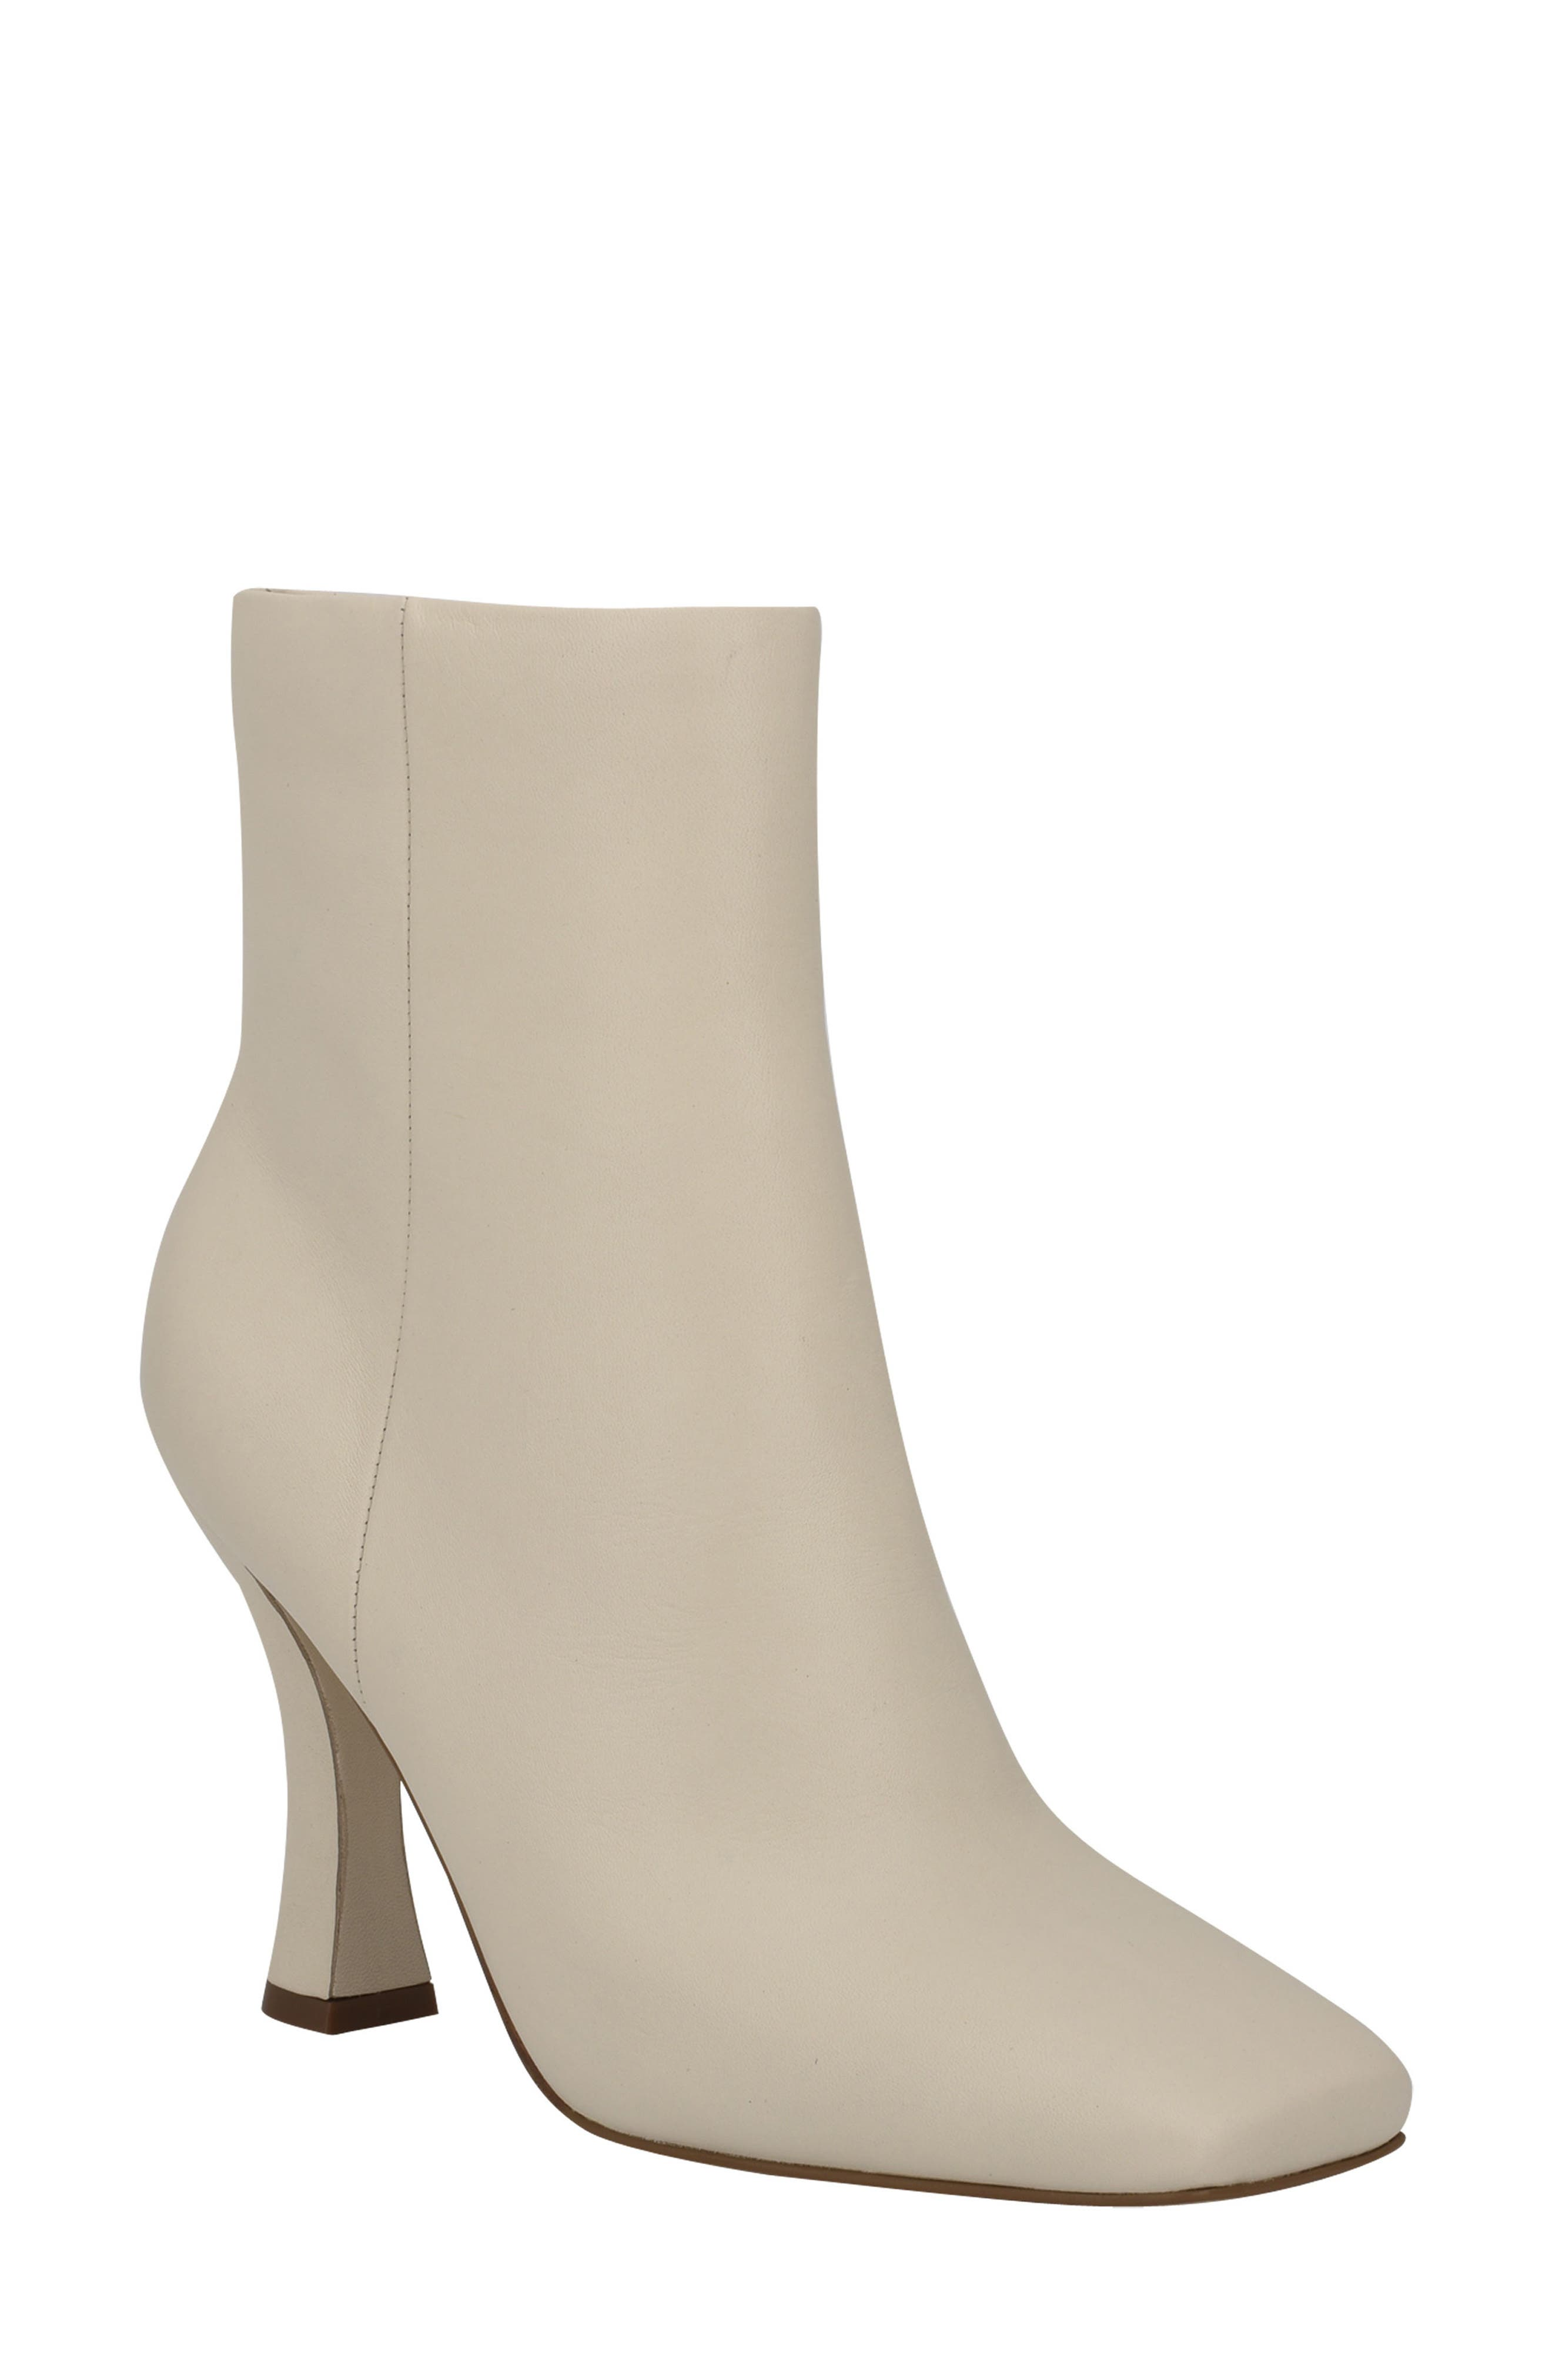 Women's White Booties \u0026 Ankle Boots